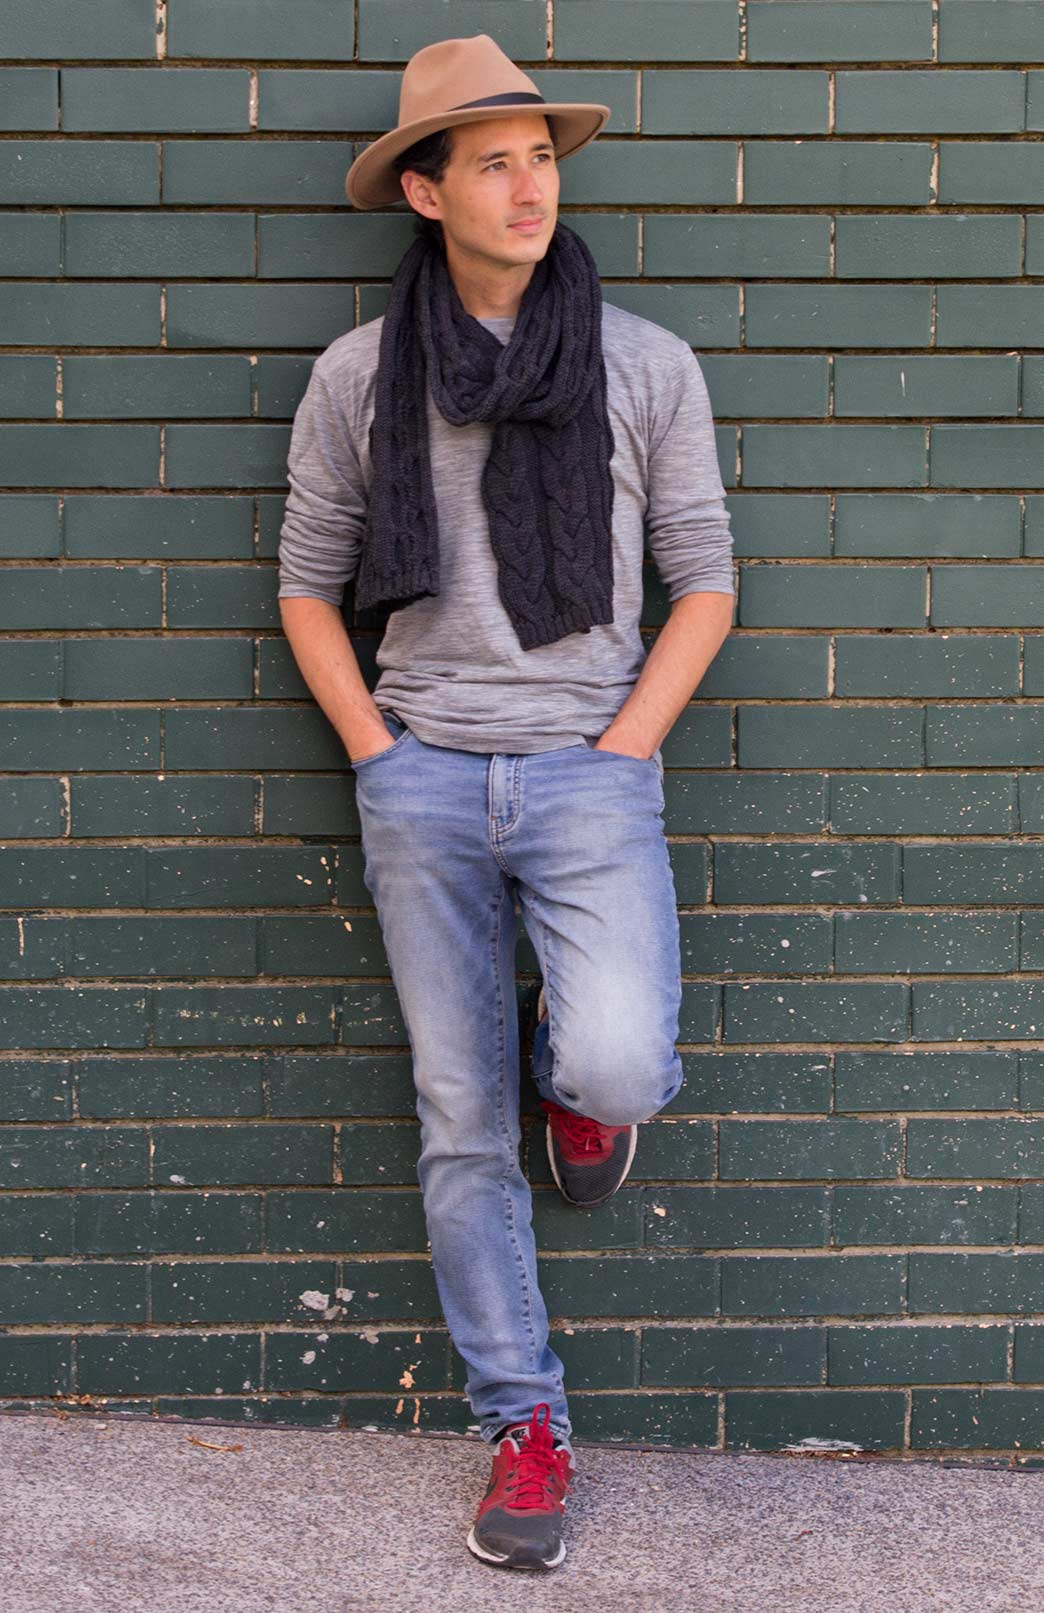 Men's Chunky Knit Cable Scarf - Men's Charcoal Grey Chunky Merino Wool Knit Scarf with Cable Detailing - Smitten Merino Tasmania Australia